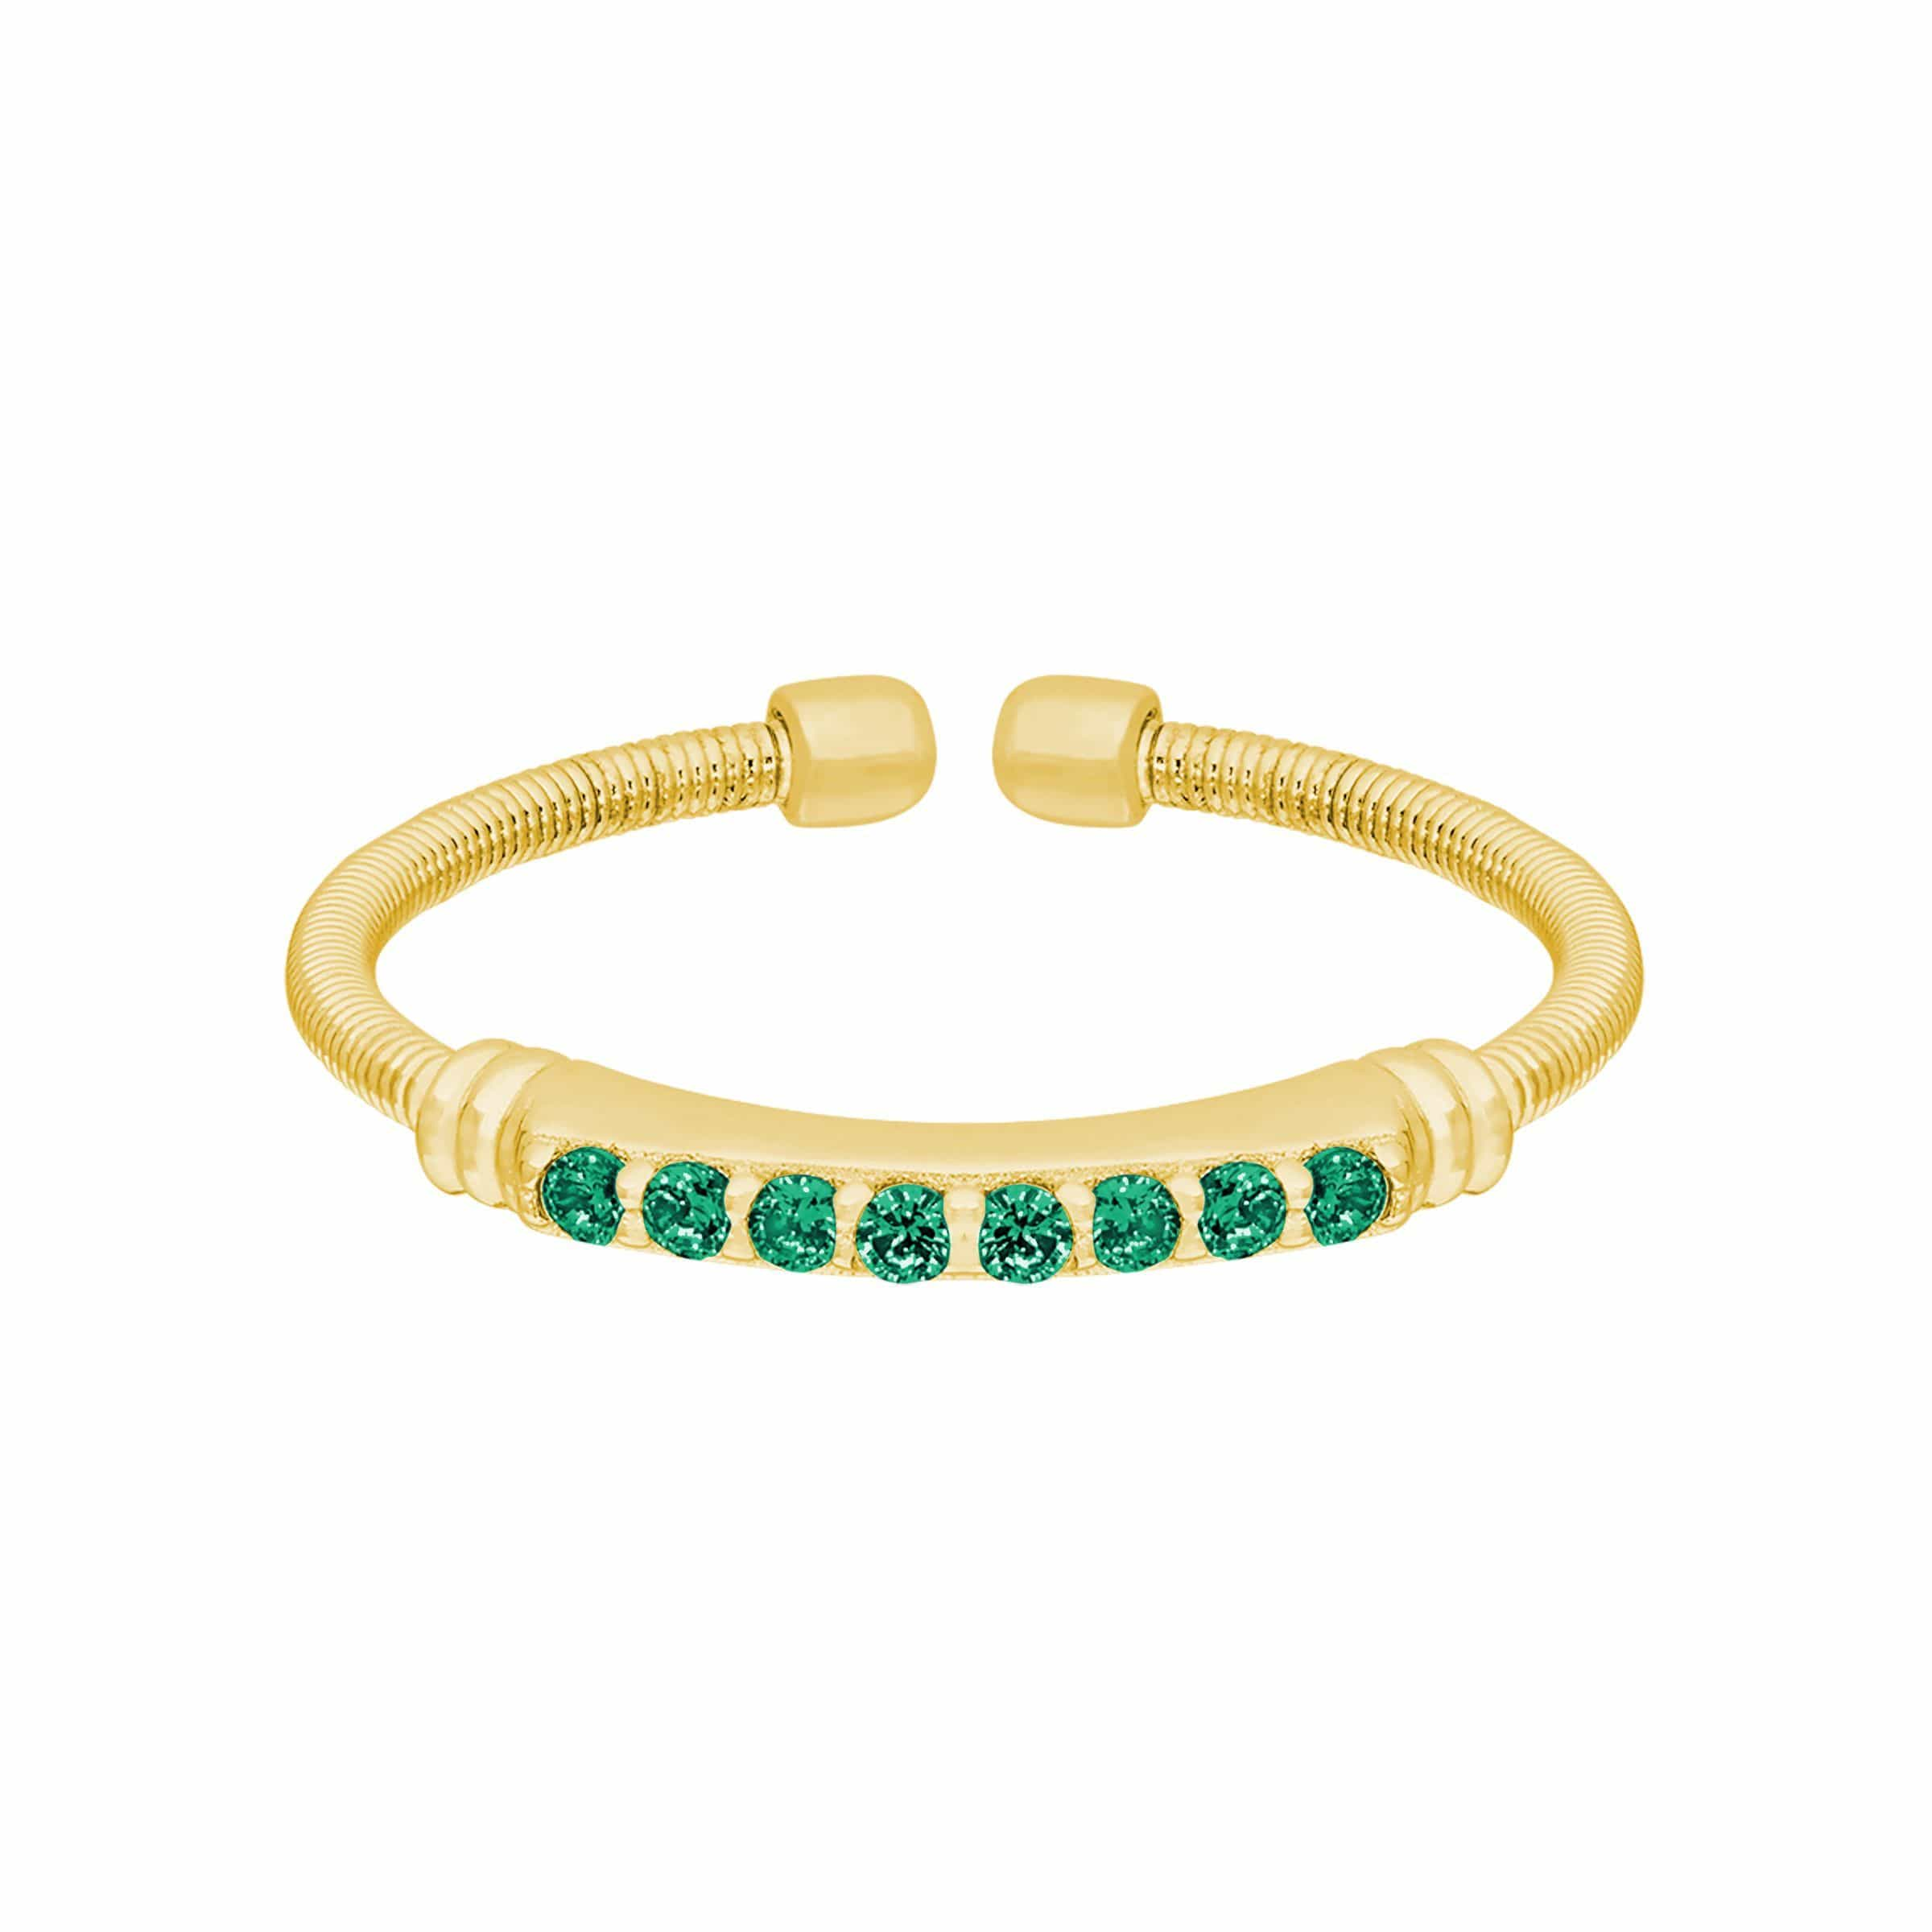 Gold Finish Sterling Silver Emerald Birth Gems May Ring - LL7004R5-G-5-Kelly Waters-Renee Taylor Gallery